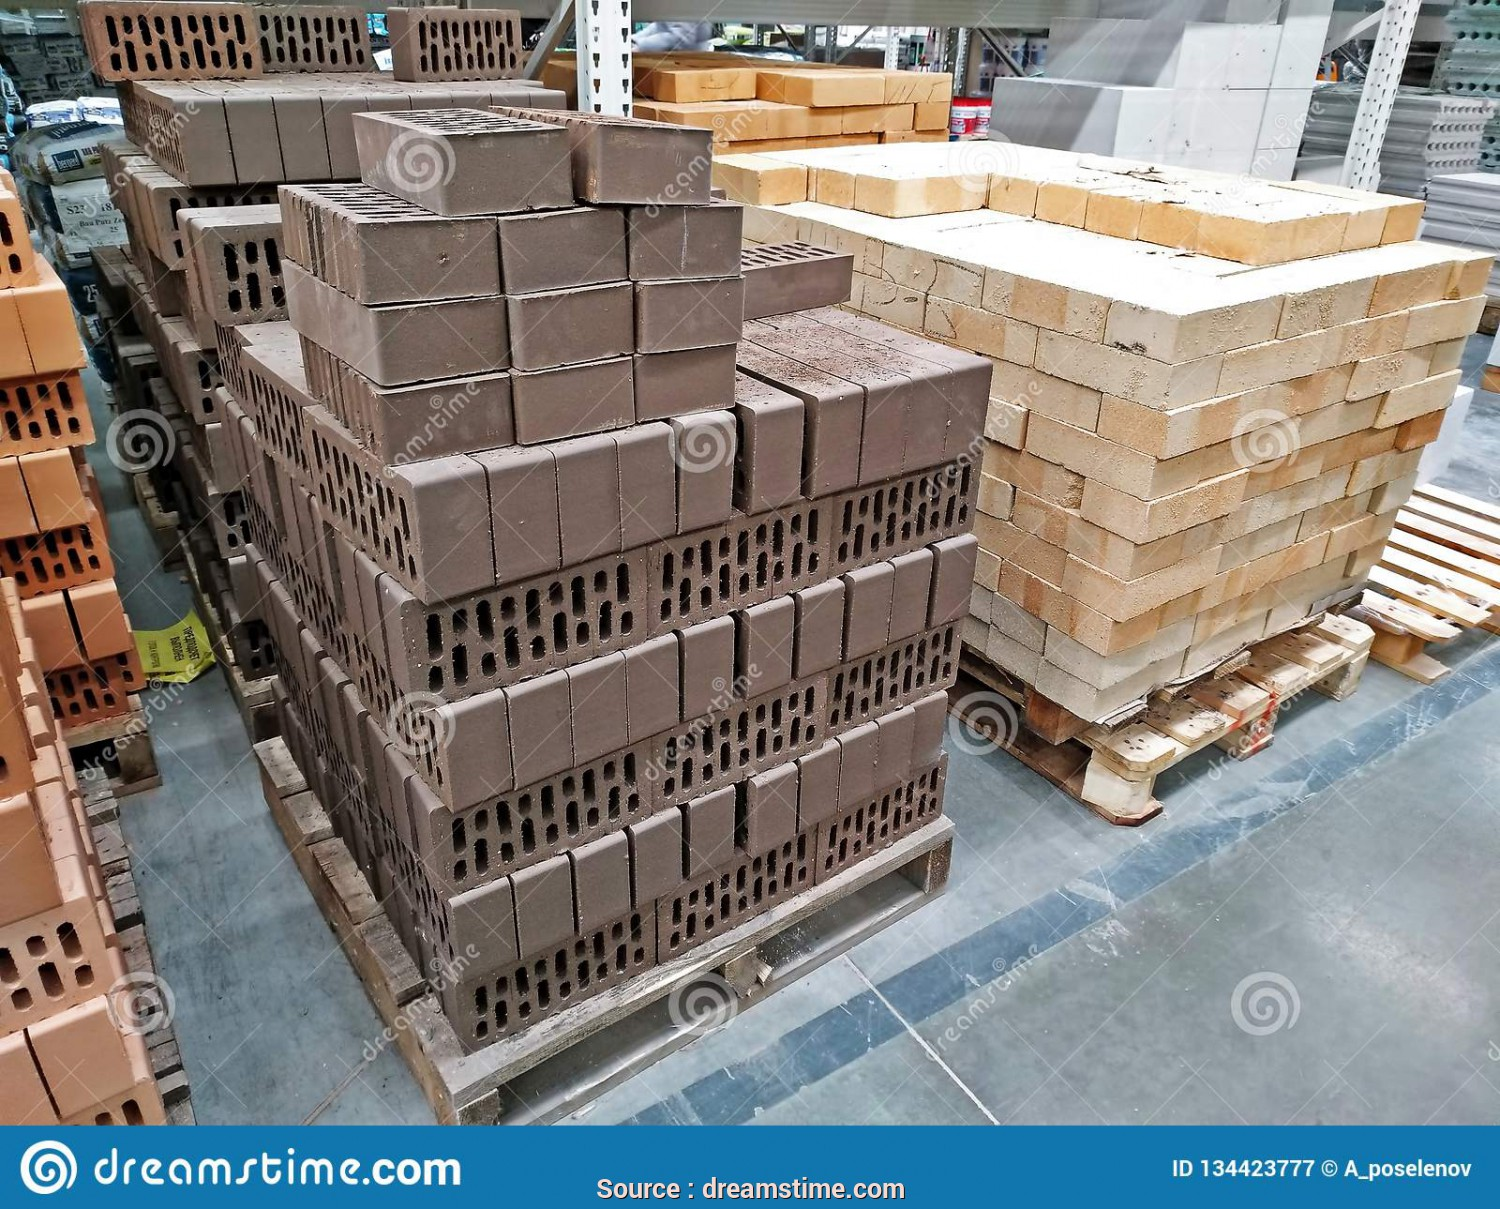 Leroy Merlin Pallet, Eccezionale KEMEROVO, RUSSIA, DECEMBER, 2018. Pallets With Various Kinds Of Bricks In A Large Building Materials Store Leroy Merlin